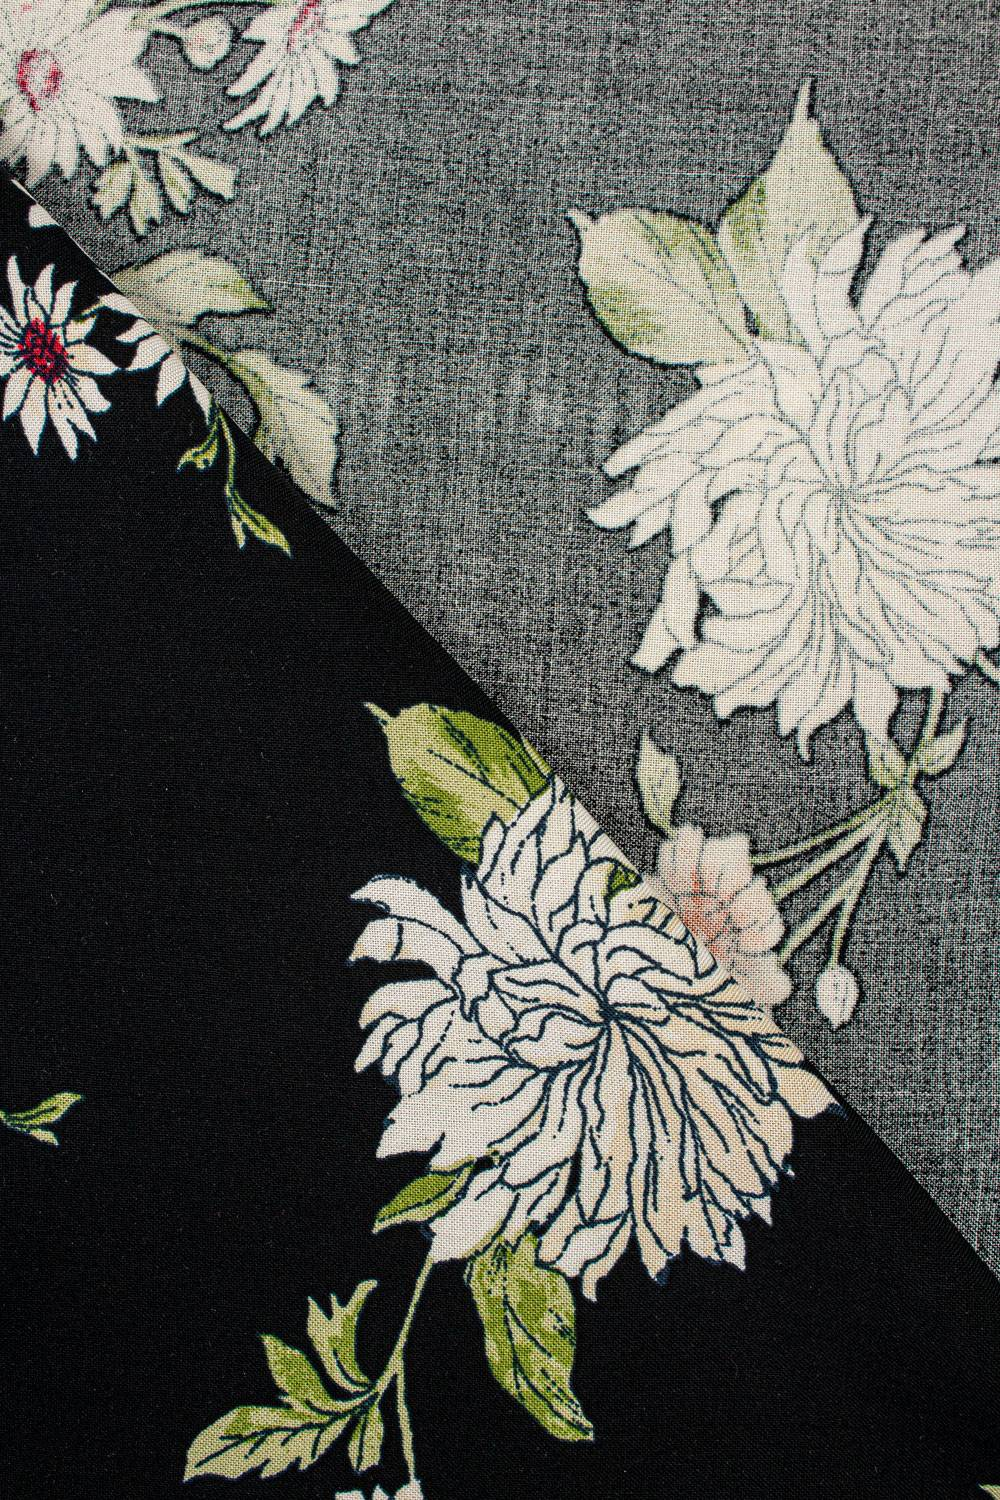 Fabric - Viscose - Black With Red & White Flowers - 140 cm - 130 g/m2